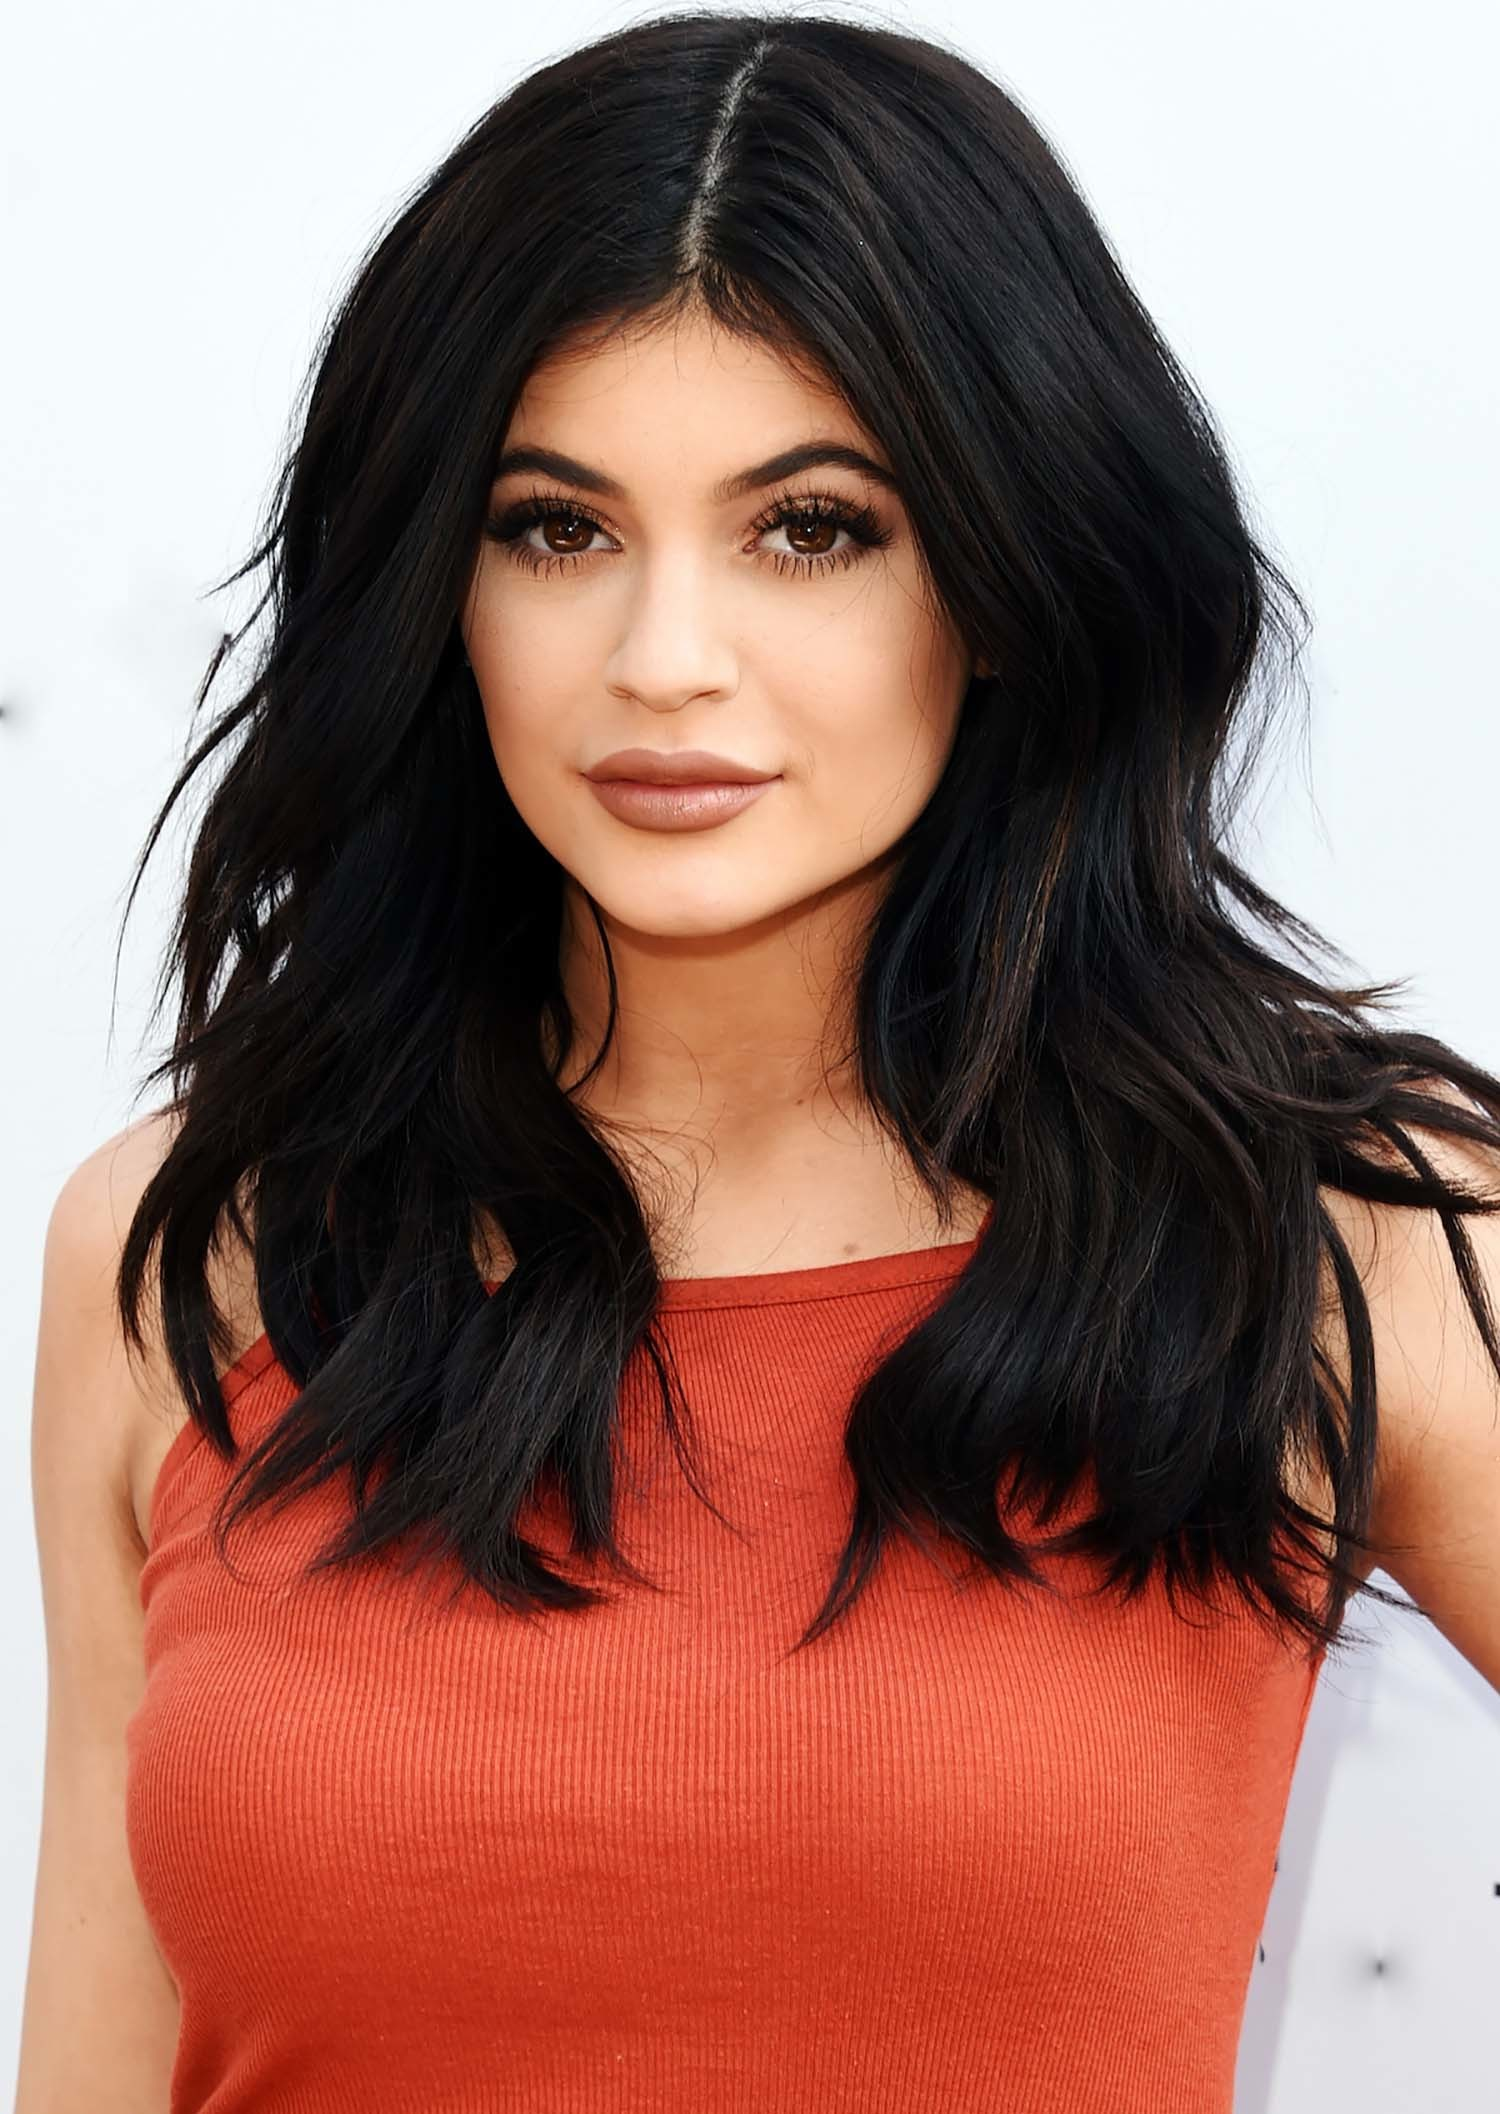 Kylie Jenner Lip Kit Are Colourpop Lipsticks: Kylie Jenner Wallpapers ·①